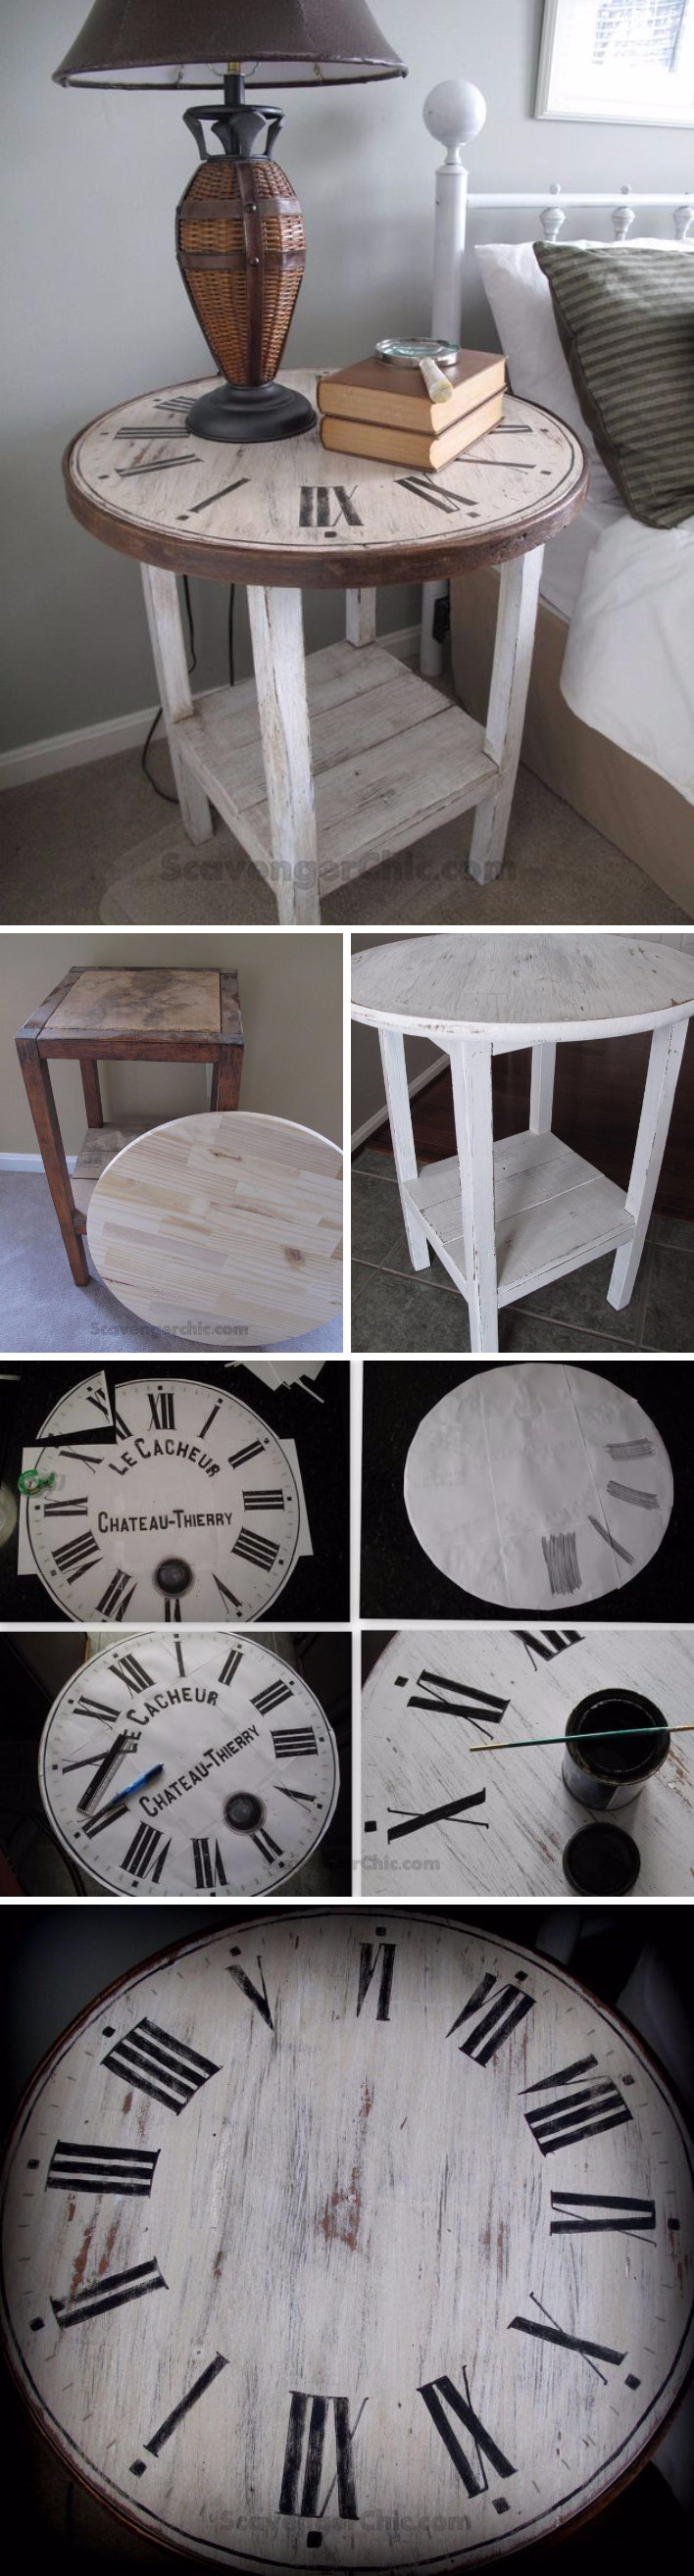 diy side table ideas with lots tutorials gold accent decor vintage clock leick corner computer desk counter height cylinder lamp tall marble plant stand small mosaic battery